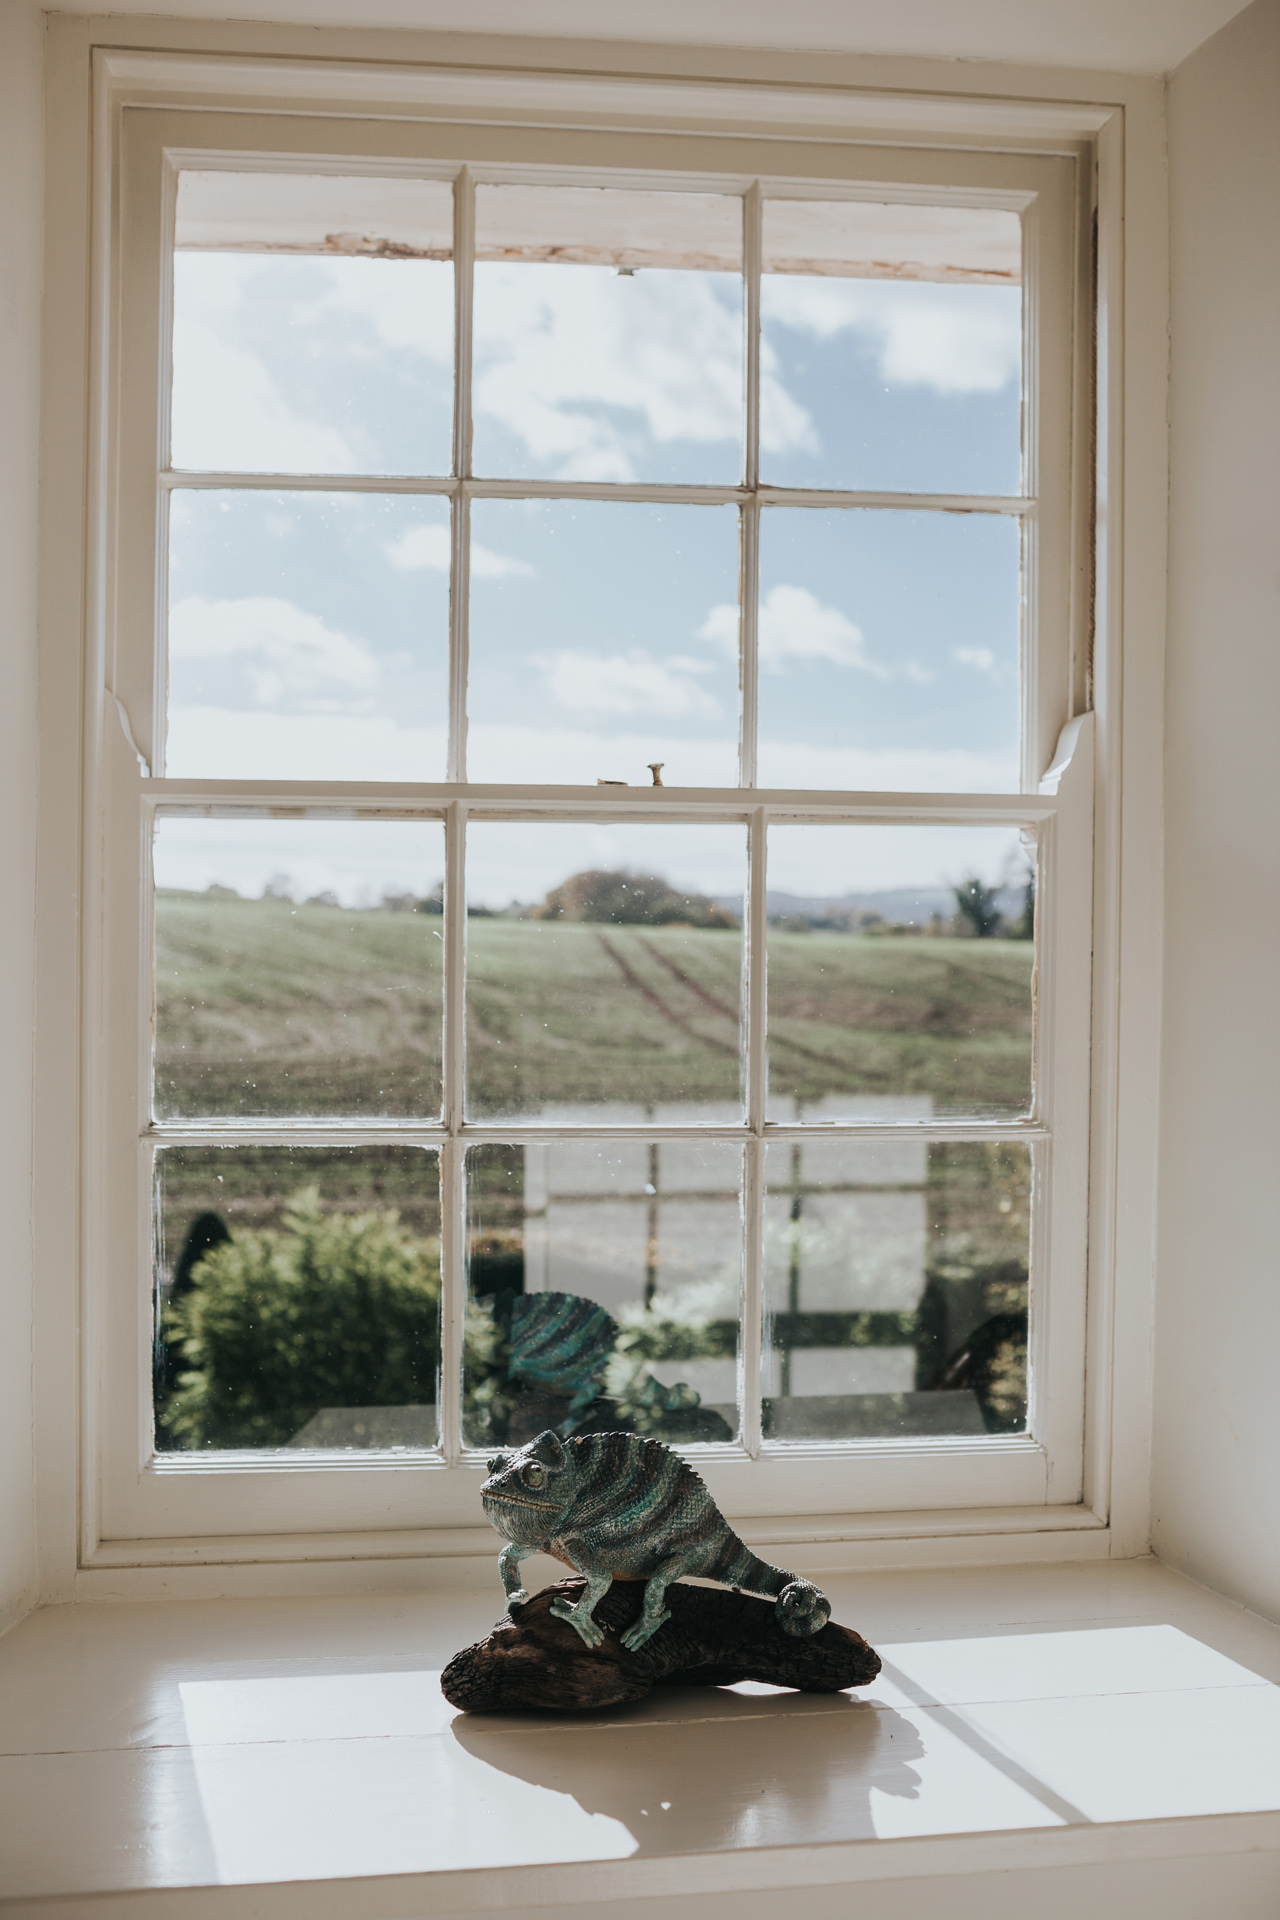 A window with a view over Callow with a Chameleon.